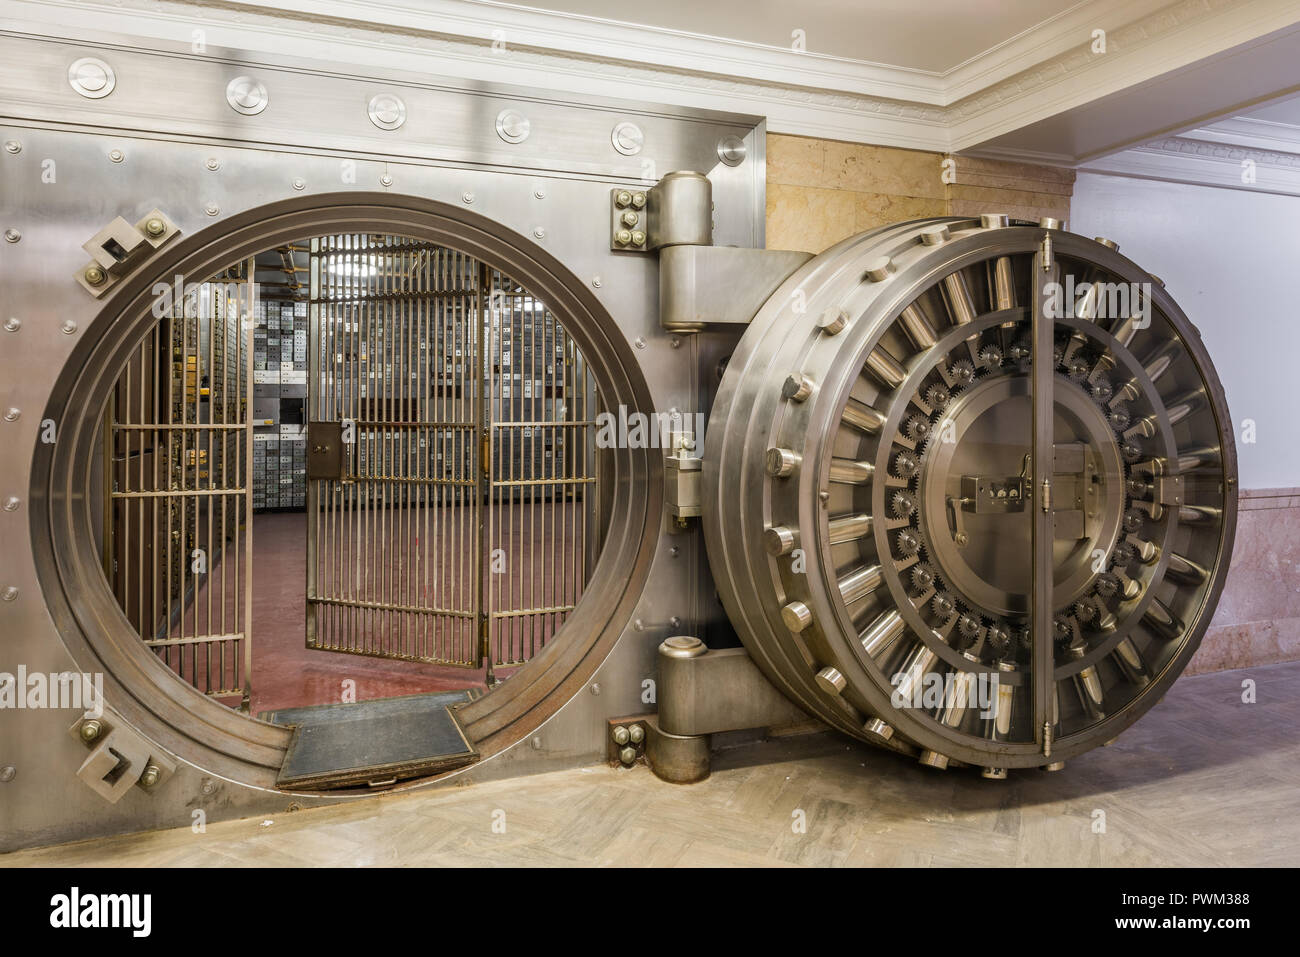 Bank vault in the basement of the Gary State Bank building - Stock Image